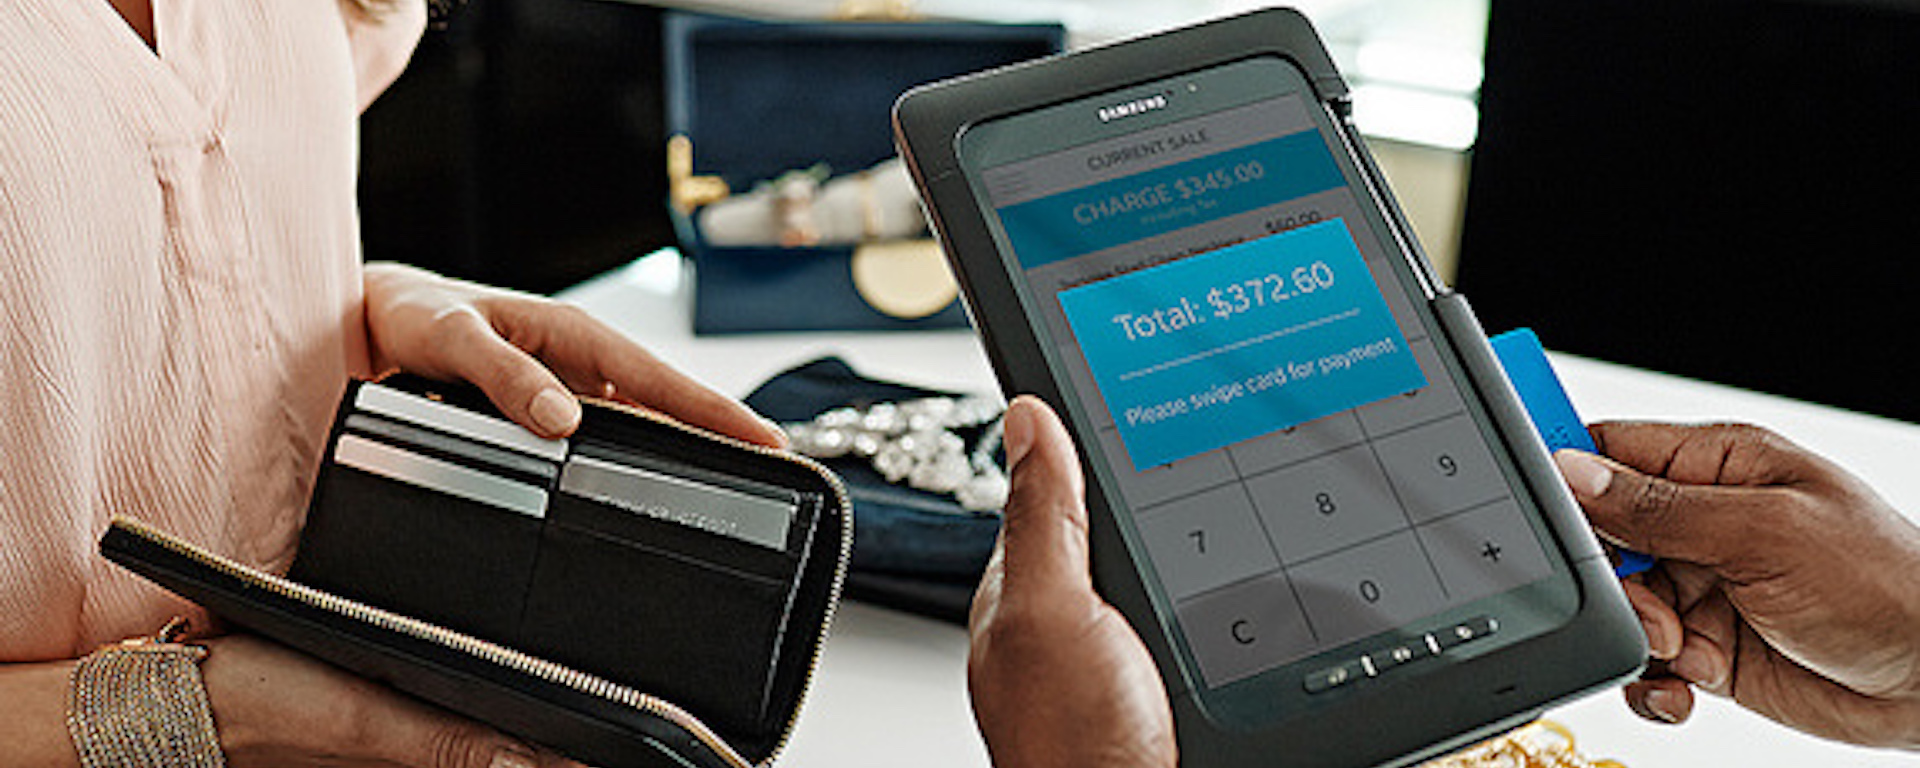 Retailers are harnessing the benefits of mobile payments to drive customer loyalty.